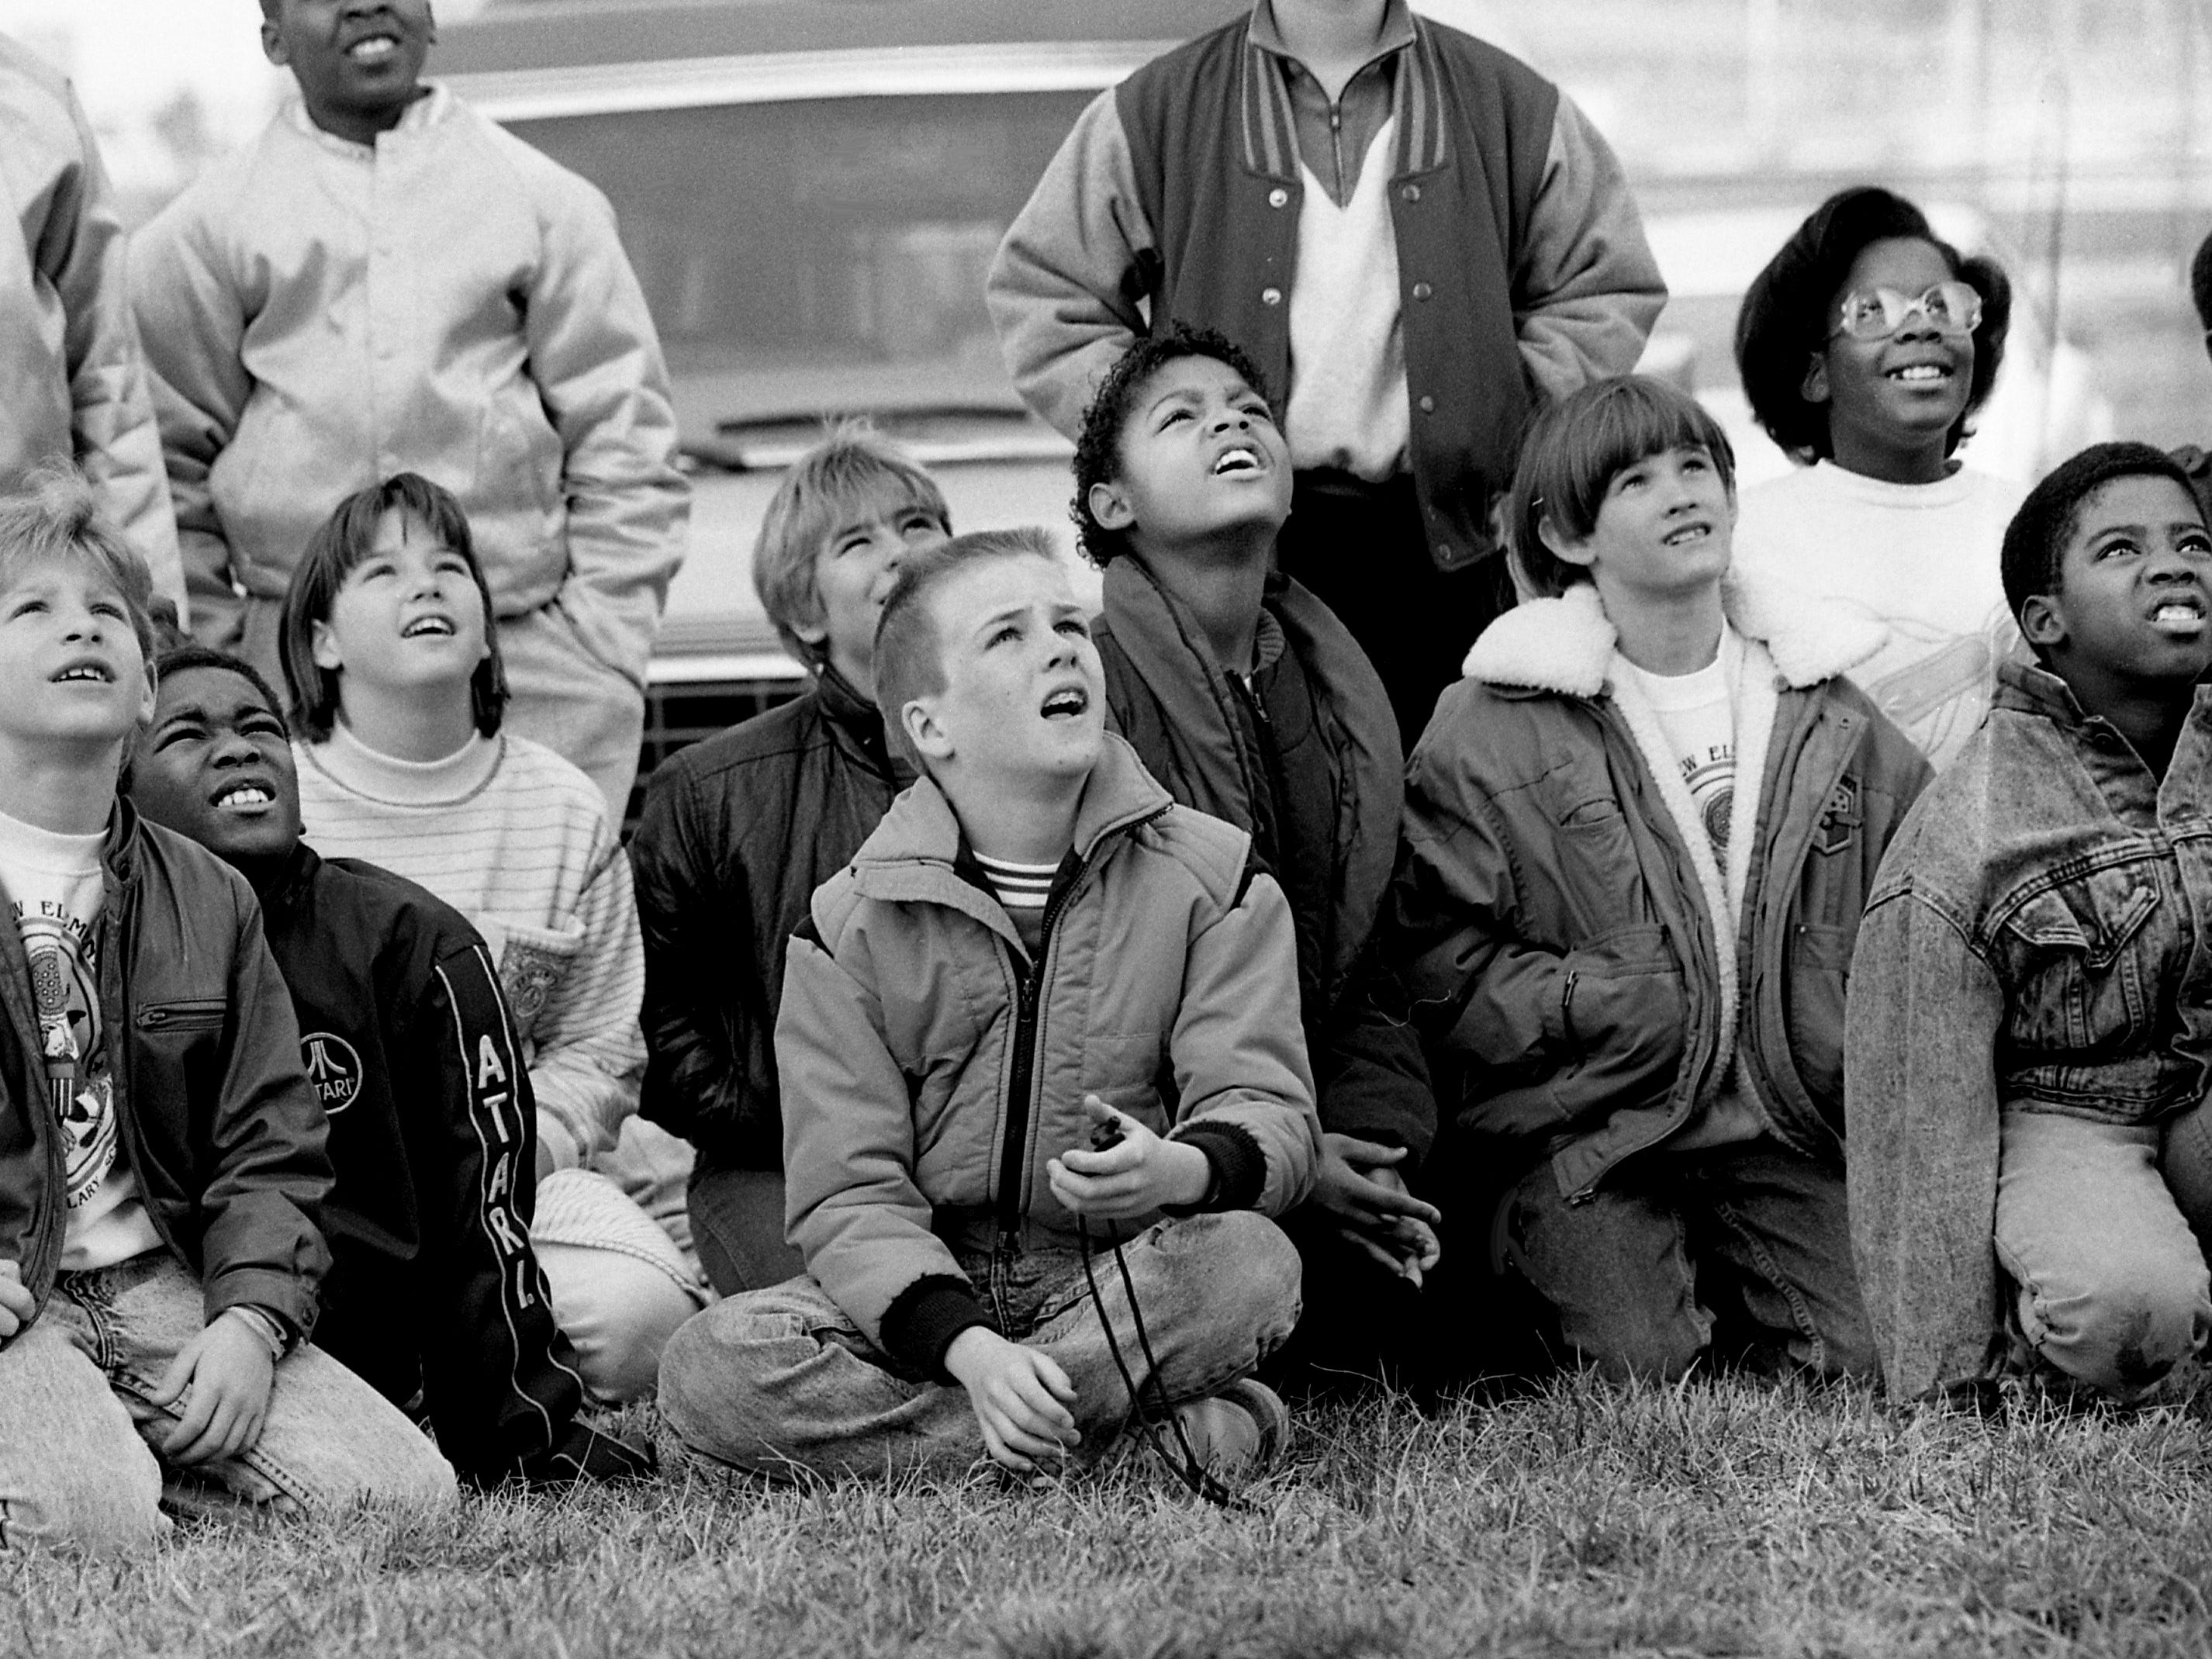 Lakeview Elementary School fourth-grade students watch teachers Charles Sellars and Mary McHugh throw their space transportation projects Nashville International Airport on March 2, 1989.